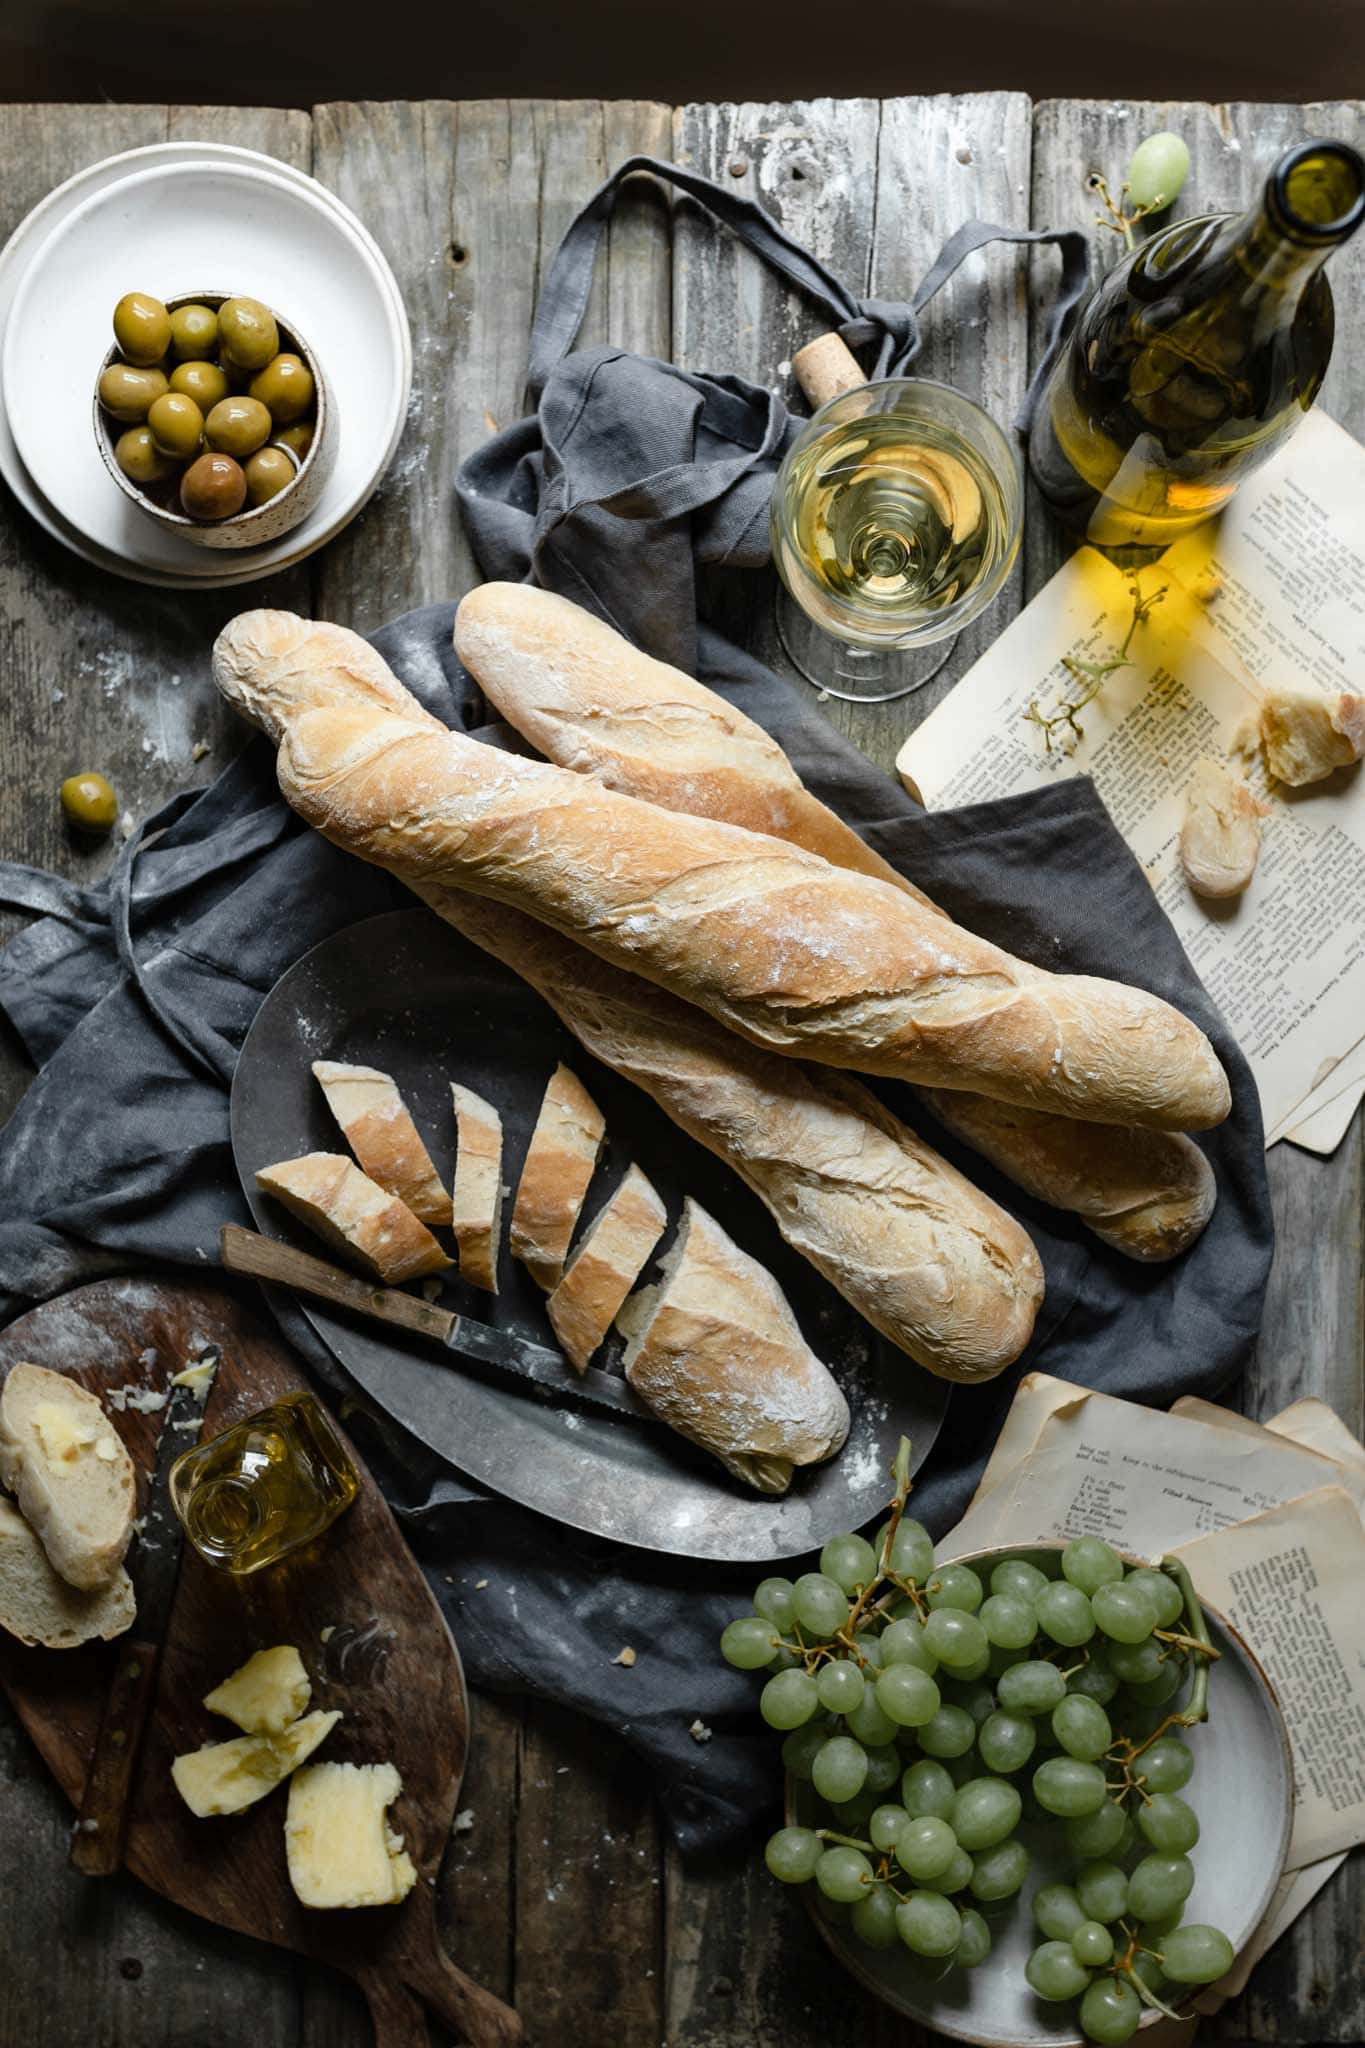 Homemade french baguettes with olives and olive oil.